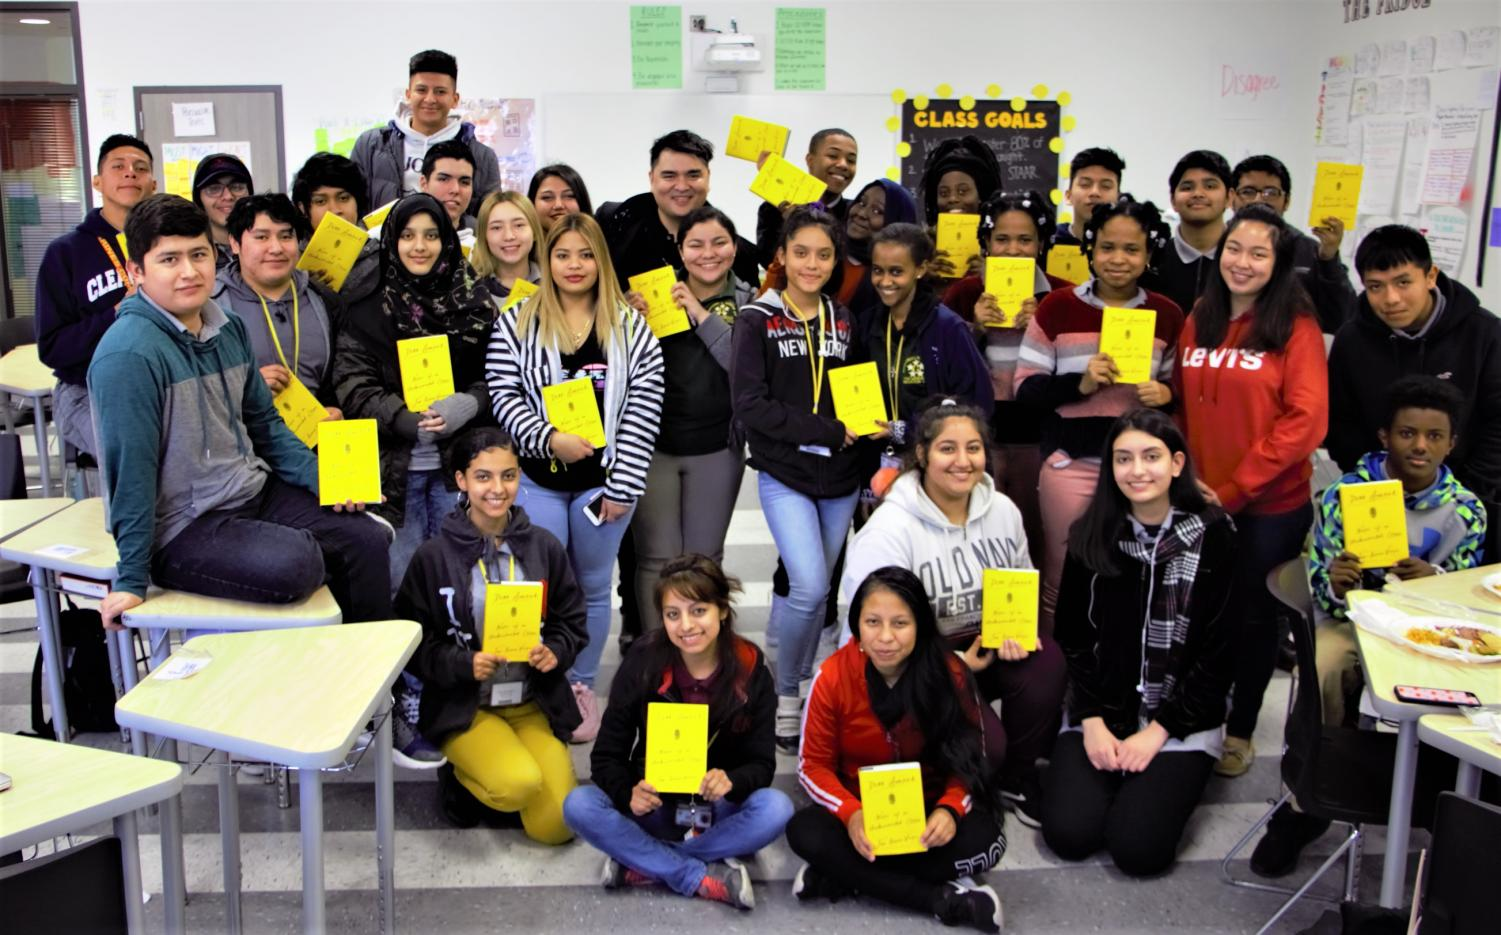 Vargas answered questions about his book with an AP English class at Wisdom HS; Tuesday, March 5, 2019